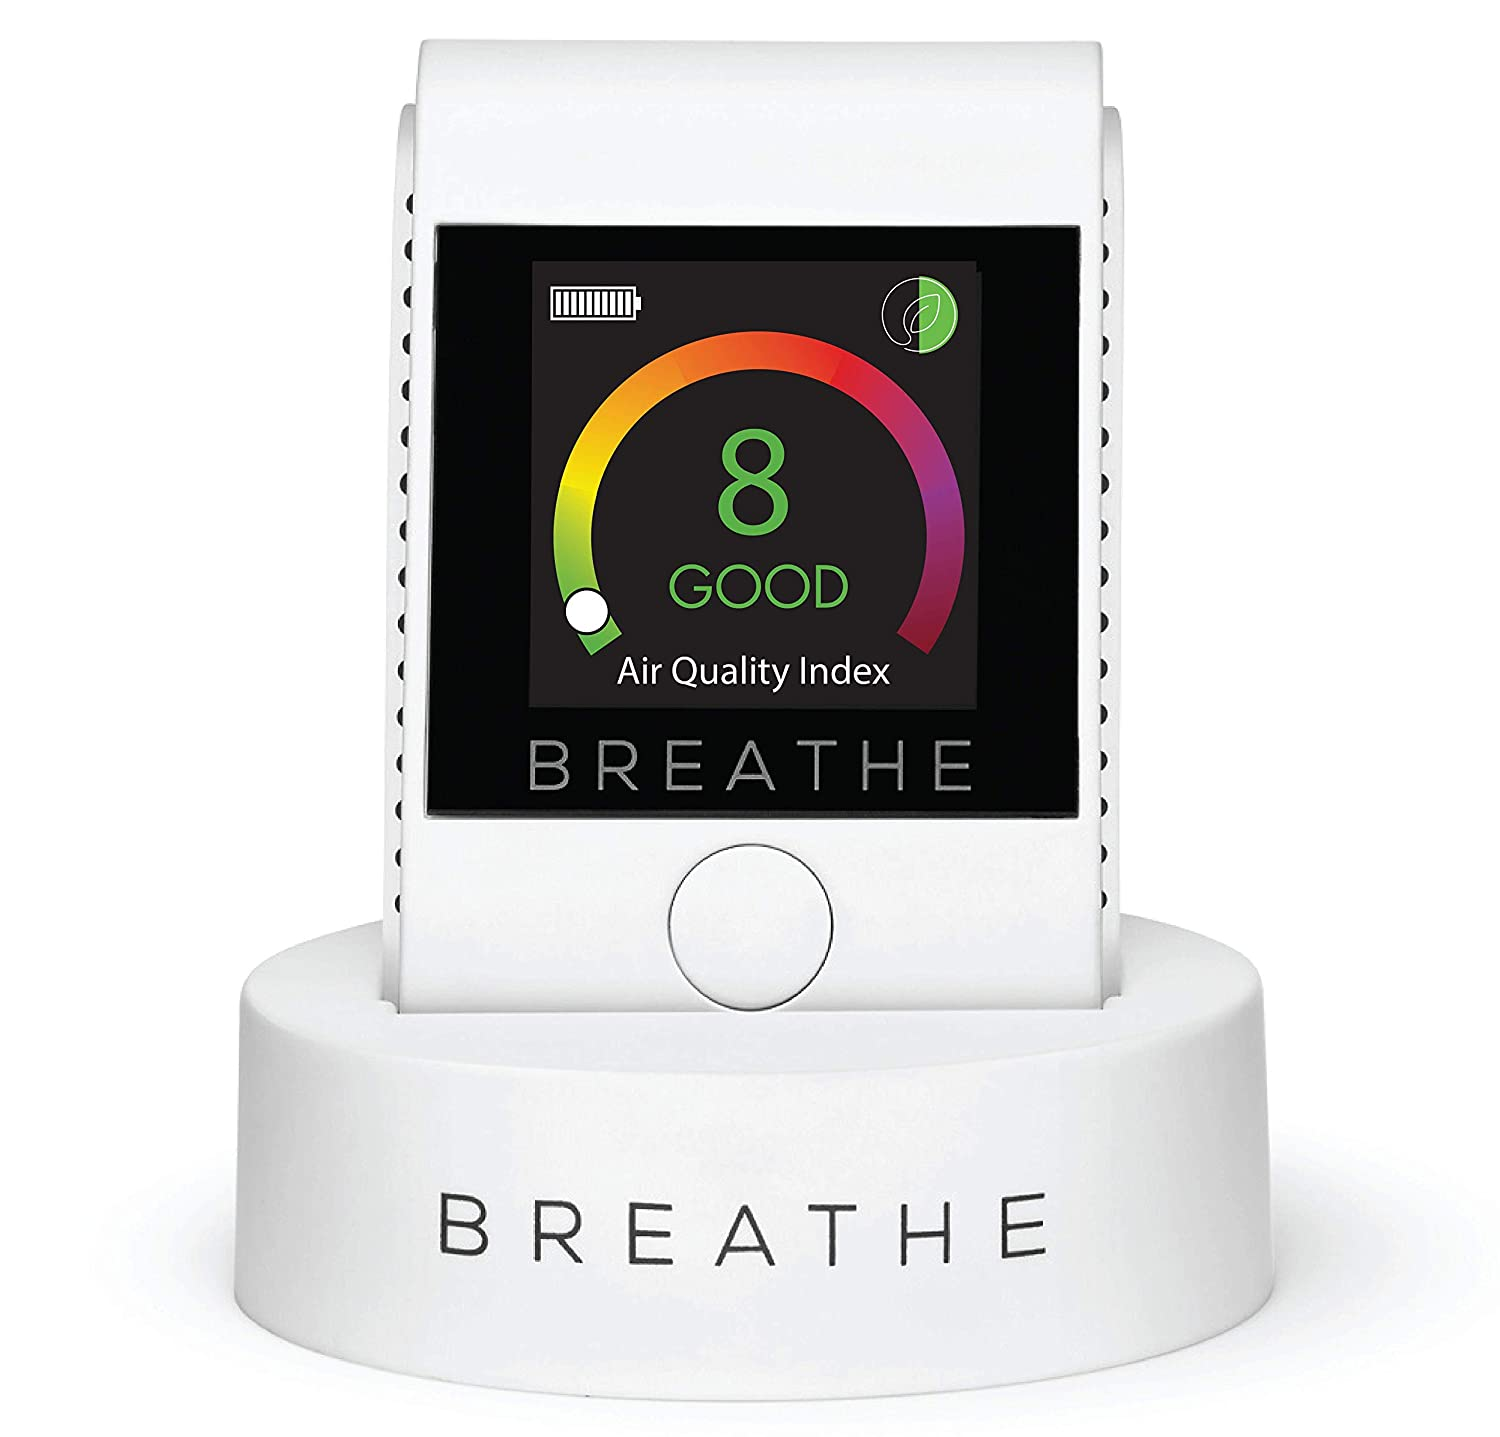 BREATHE|Smart 2 Personal Air Quality Monitor, Measures Outdoor and Indoor Air Quality. Monitors Dust, Smoke, PM 2.5 Air Pollution - Reduce Your Exposure to Toxic Air.